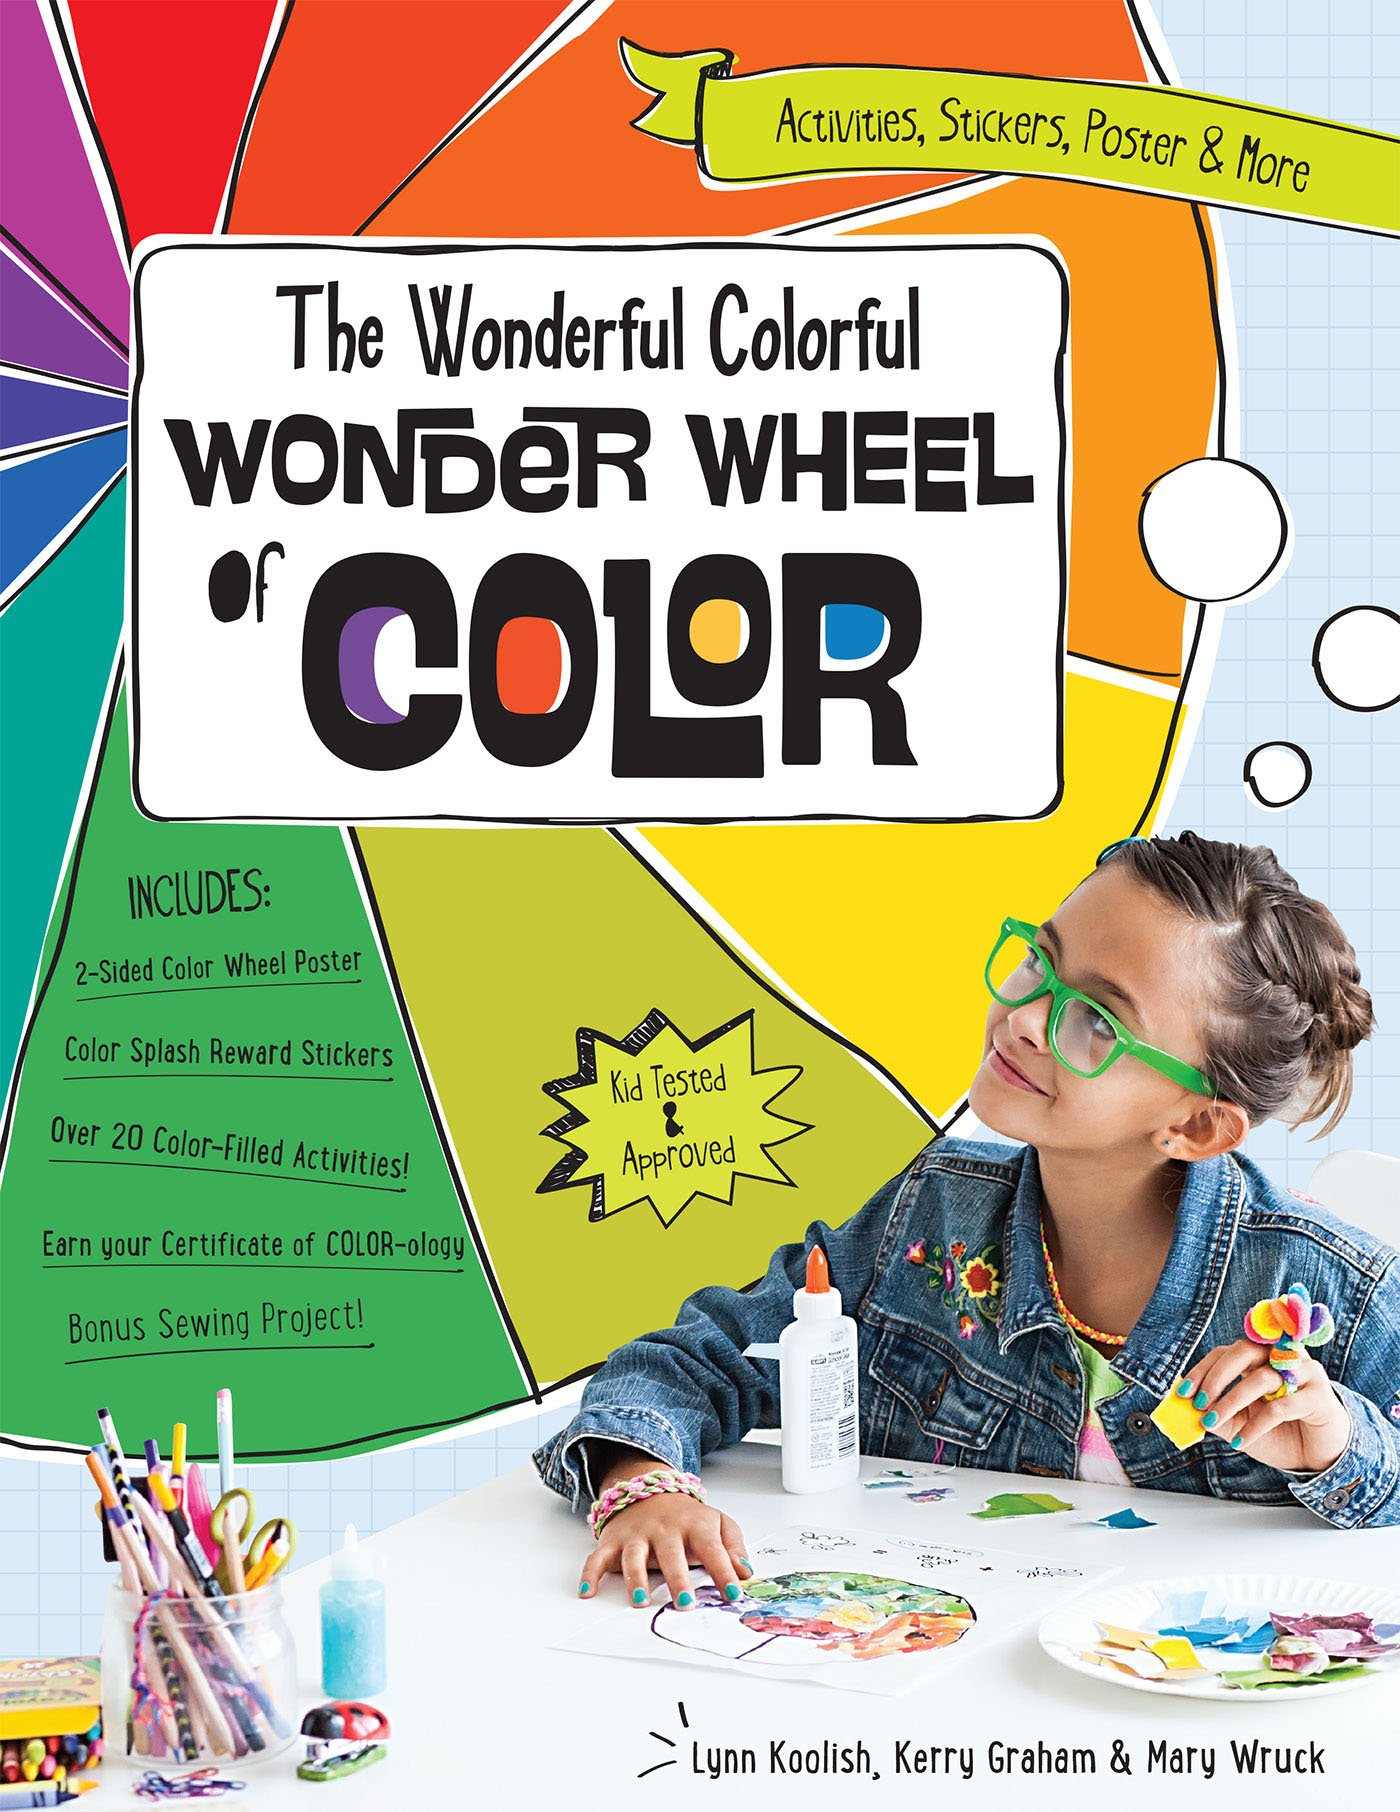 The Wonderful Colorful Wonder Wheel Of Color Activities Stickers Poster More Koolish Lynn Graham Kerry Wruck Mary 9781607058922 Amazon Com Books